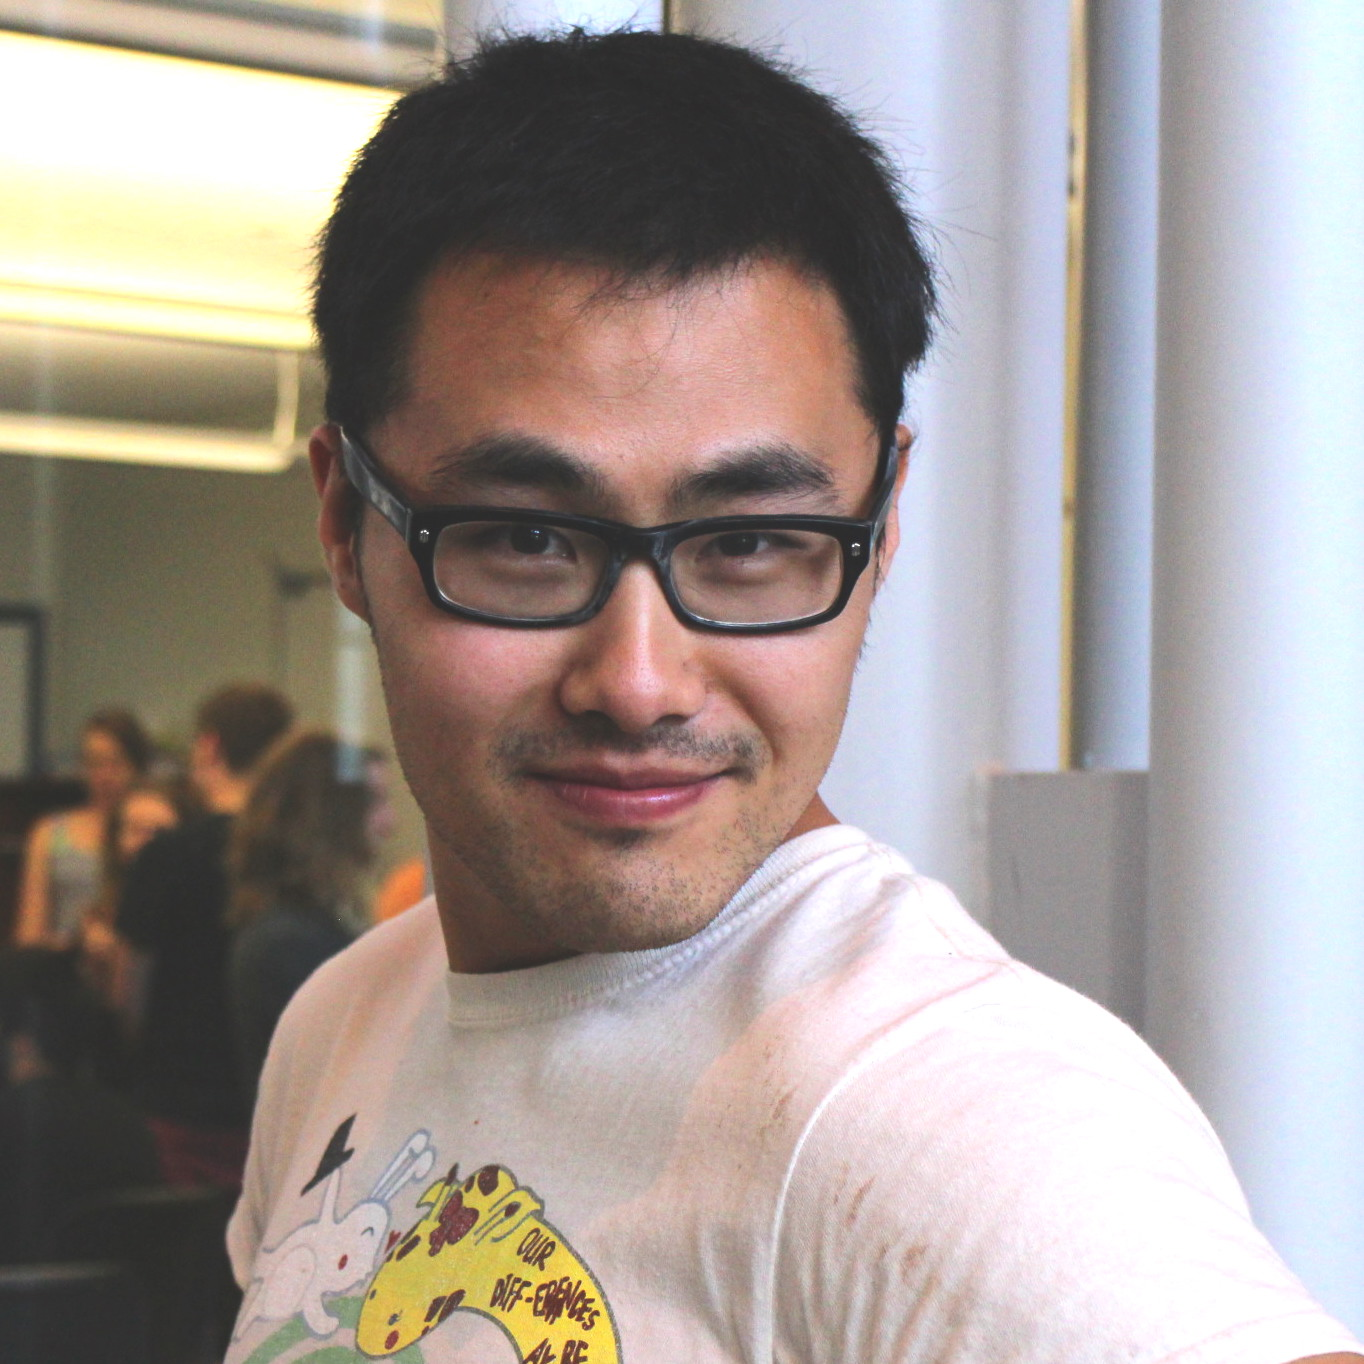 PONG QI  is the Crew Platform's Lead Developer. He is a co-founder of Crew 2030 and a FeelGood Berkeley Chapter Alumni. He grew up in Qingdao, China and came to California in 2006. In 2009, he went to UC Berkeley where he graduated in 2013 with degrees in computer science and applied math. He has over 10 years of experience as a developer. He's basically a genius.Pong really likes traveling and has been to more than half of all the states in the US. He lives in El Cerrito, CA where he rock climbs, adventures and co-works with his dear friends.